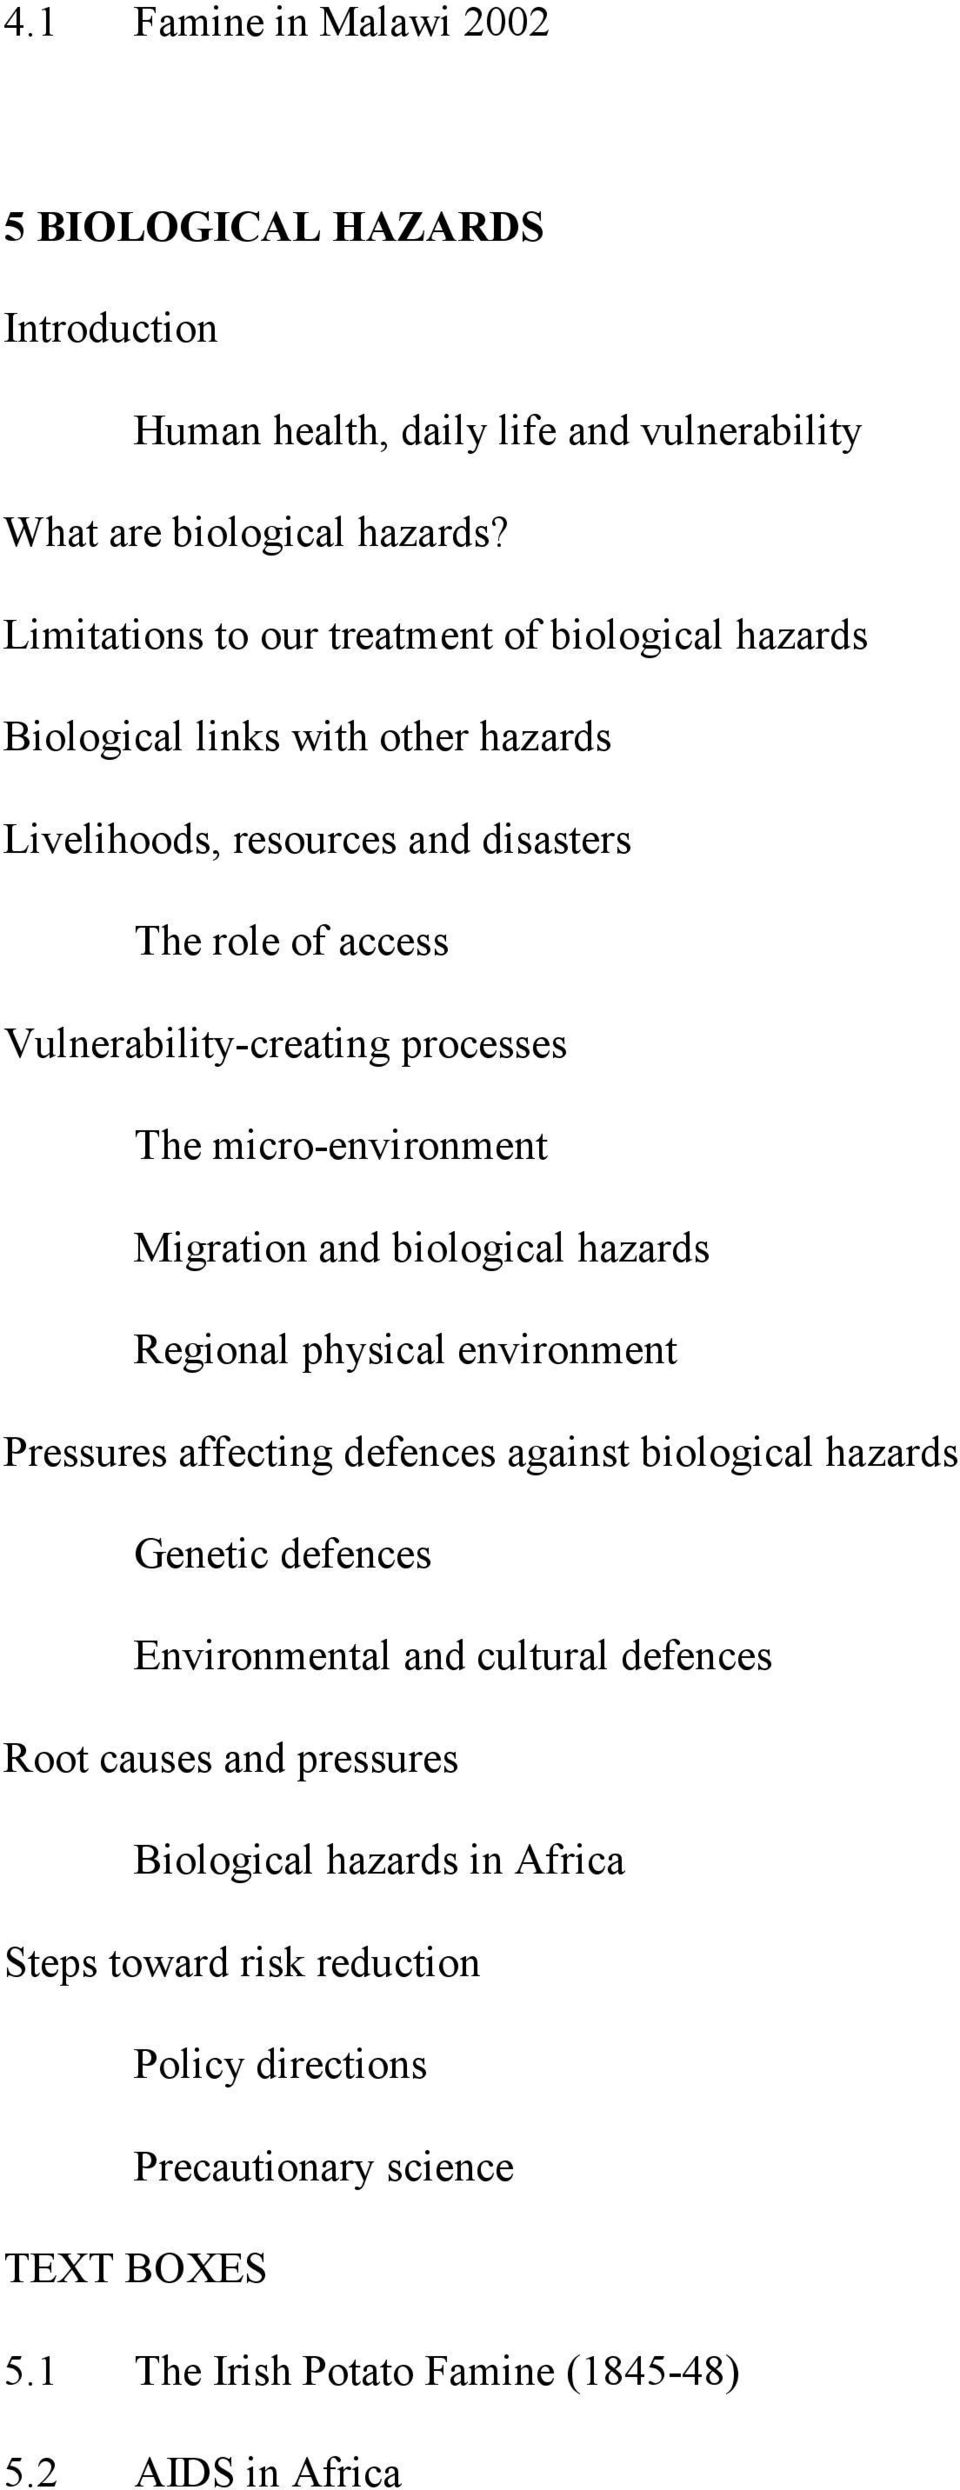 processes The micro-environment Migration and biological hazards Regional physical environment Pressures affecting defences against biological hazards Genetic defences